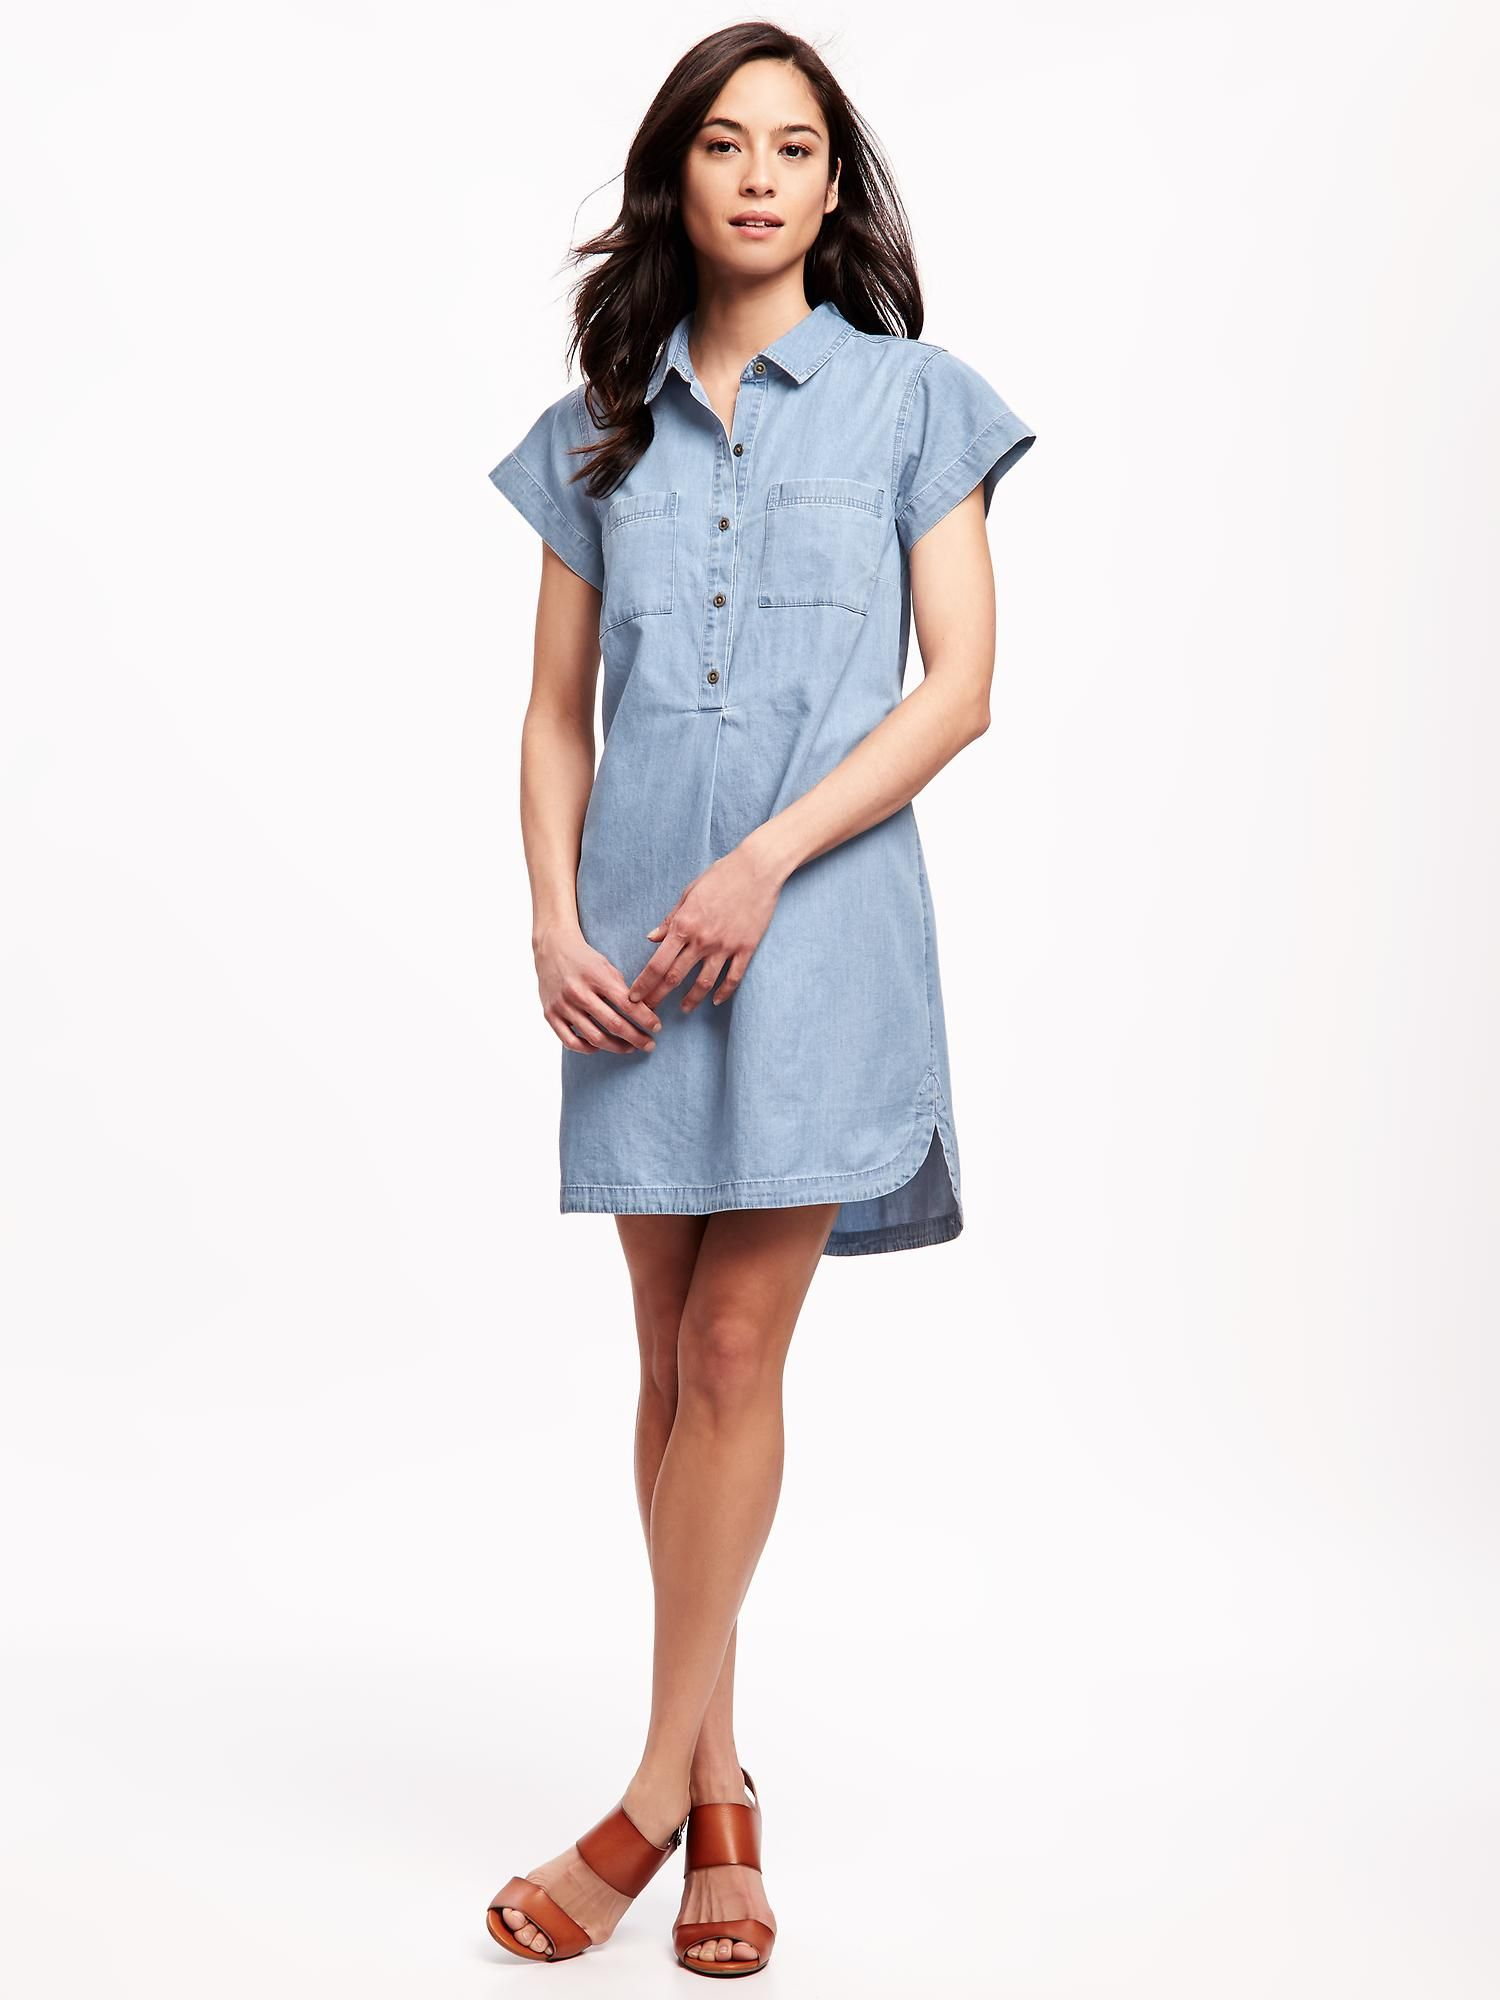 a2ffac99365 Chambray Shirt Dress for Women